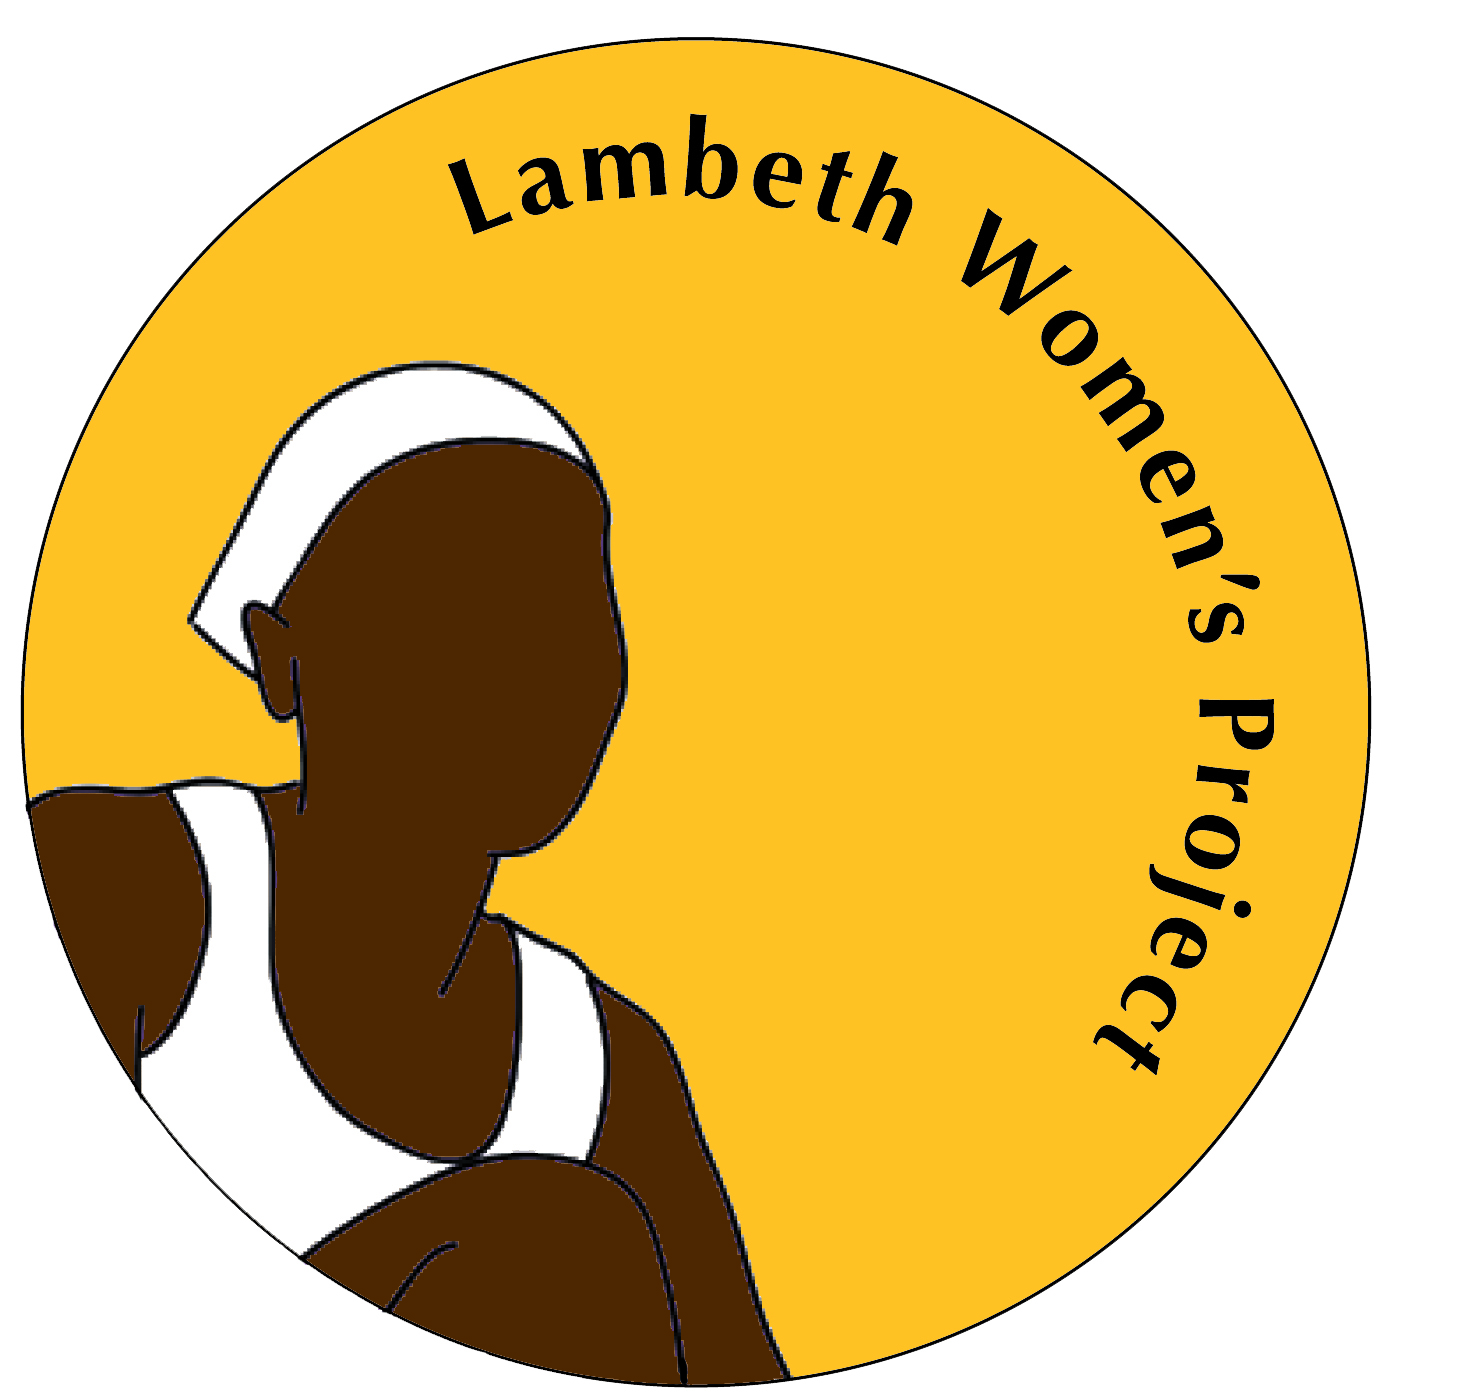 LWP logo: a yellow circle with the outline of a black woman on the left and the name of the project on the right.